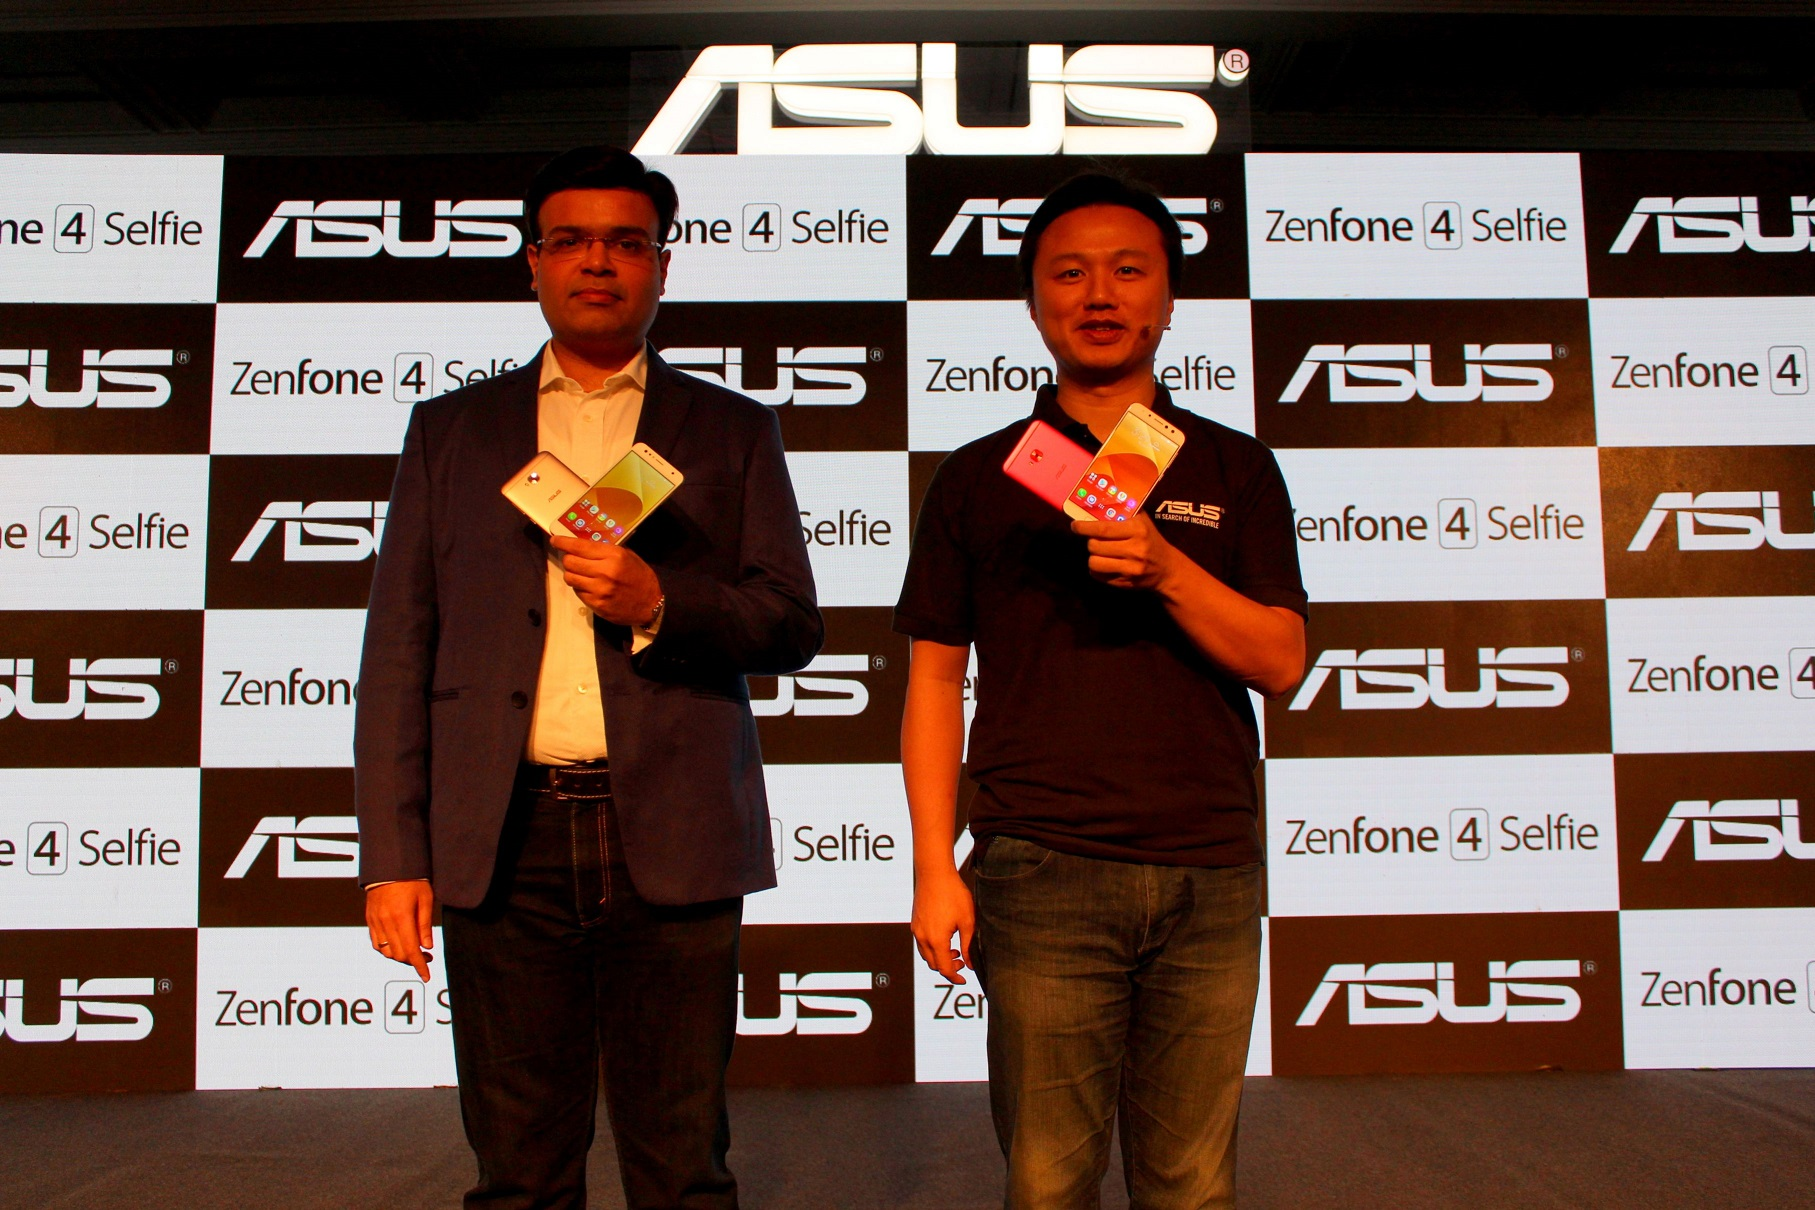 Mr. Dinesh Sharma and Mr. Peter Chang L R unveiling the Zenfone 4 Selfie Series